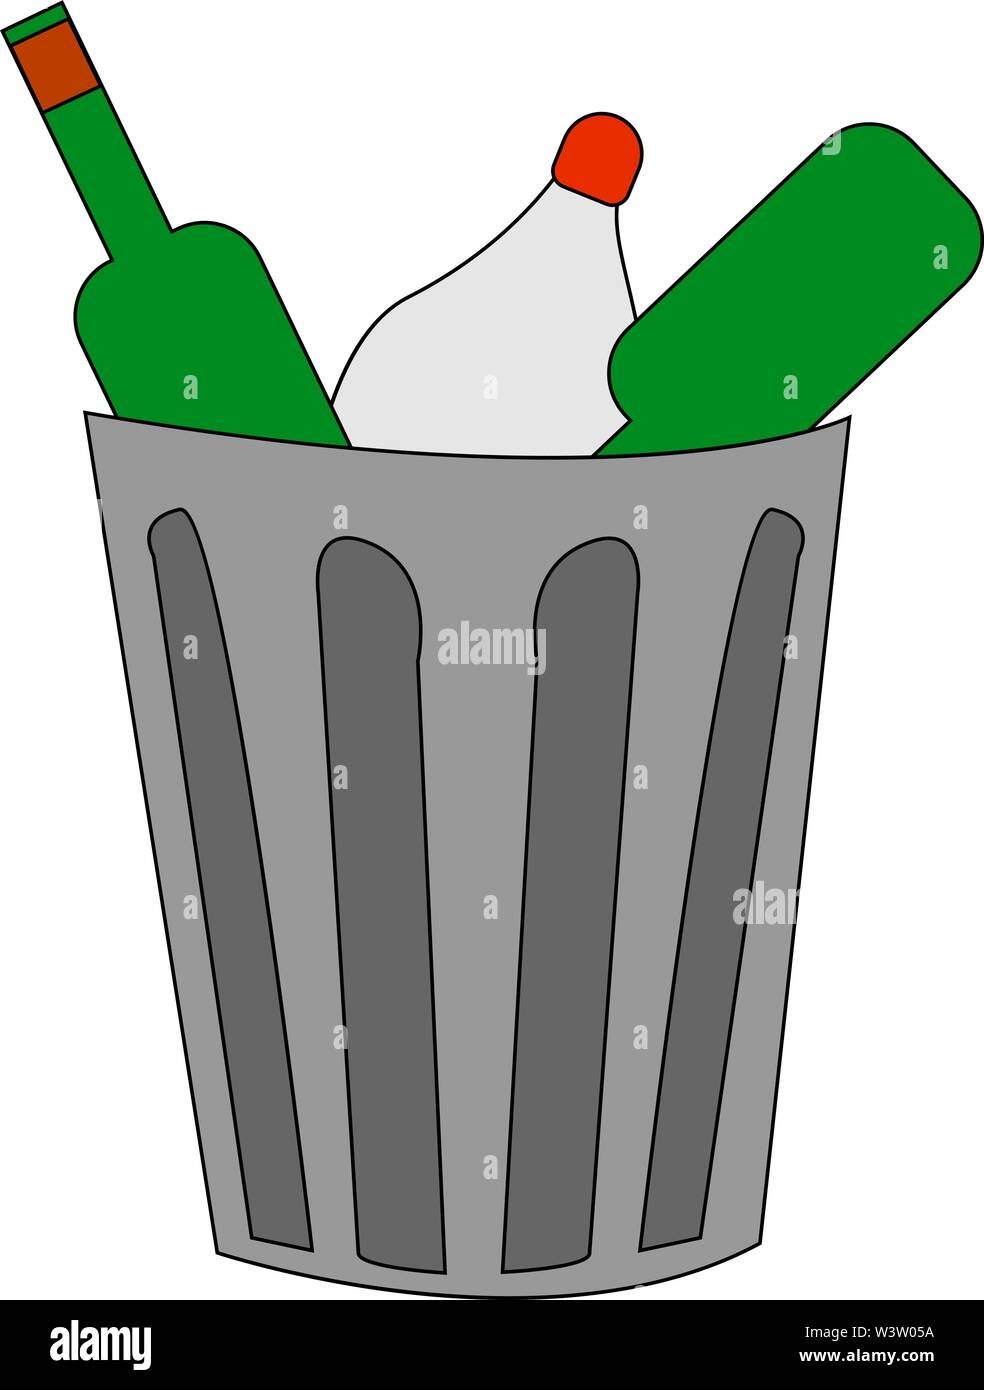 trash can with garbage, illustration, vector on white background. - Stock Image